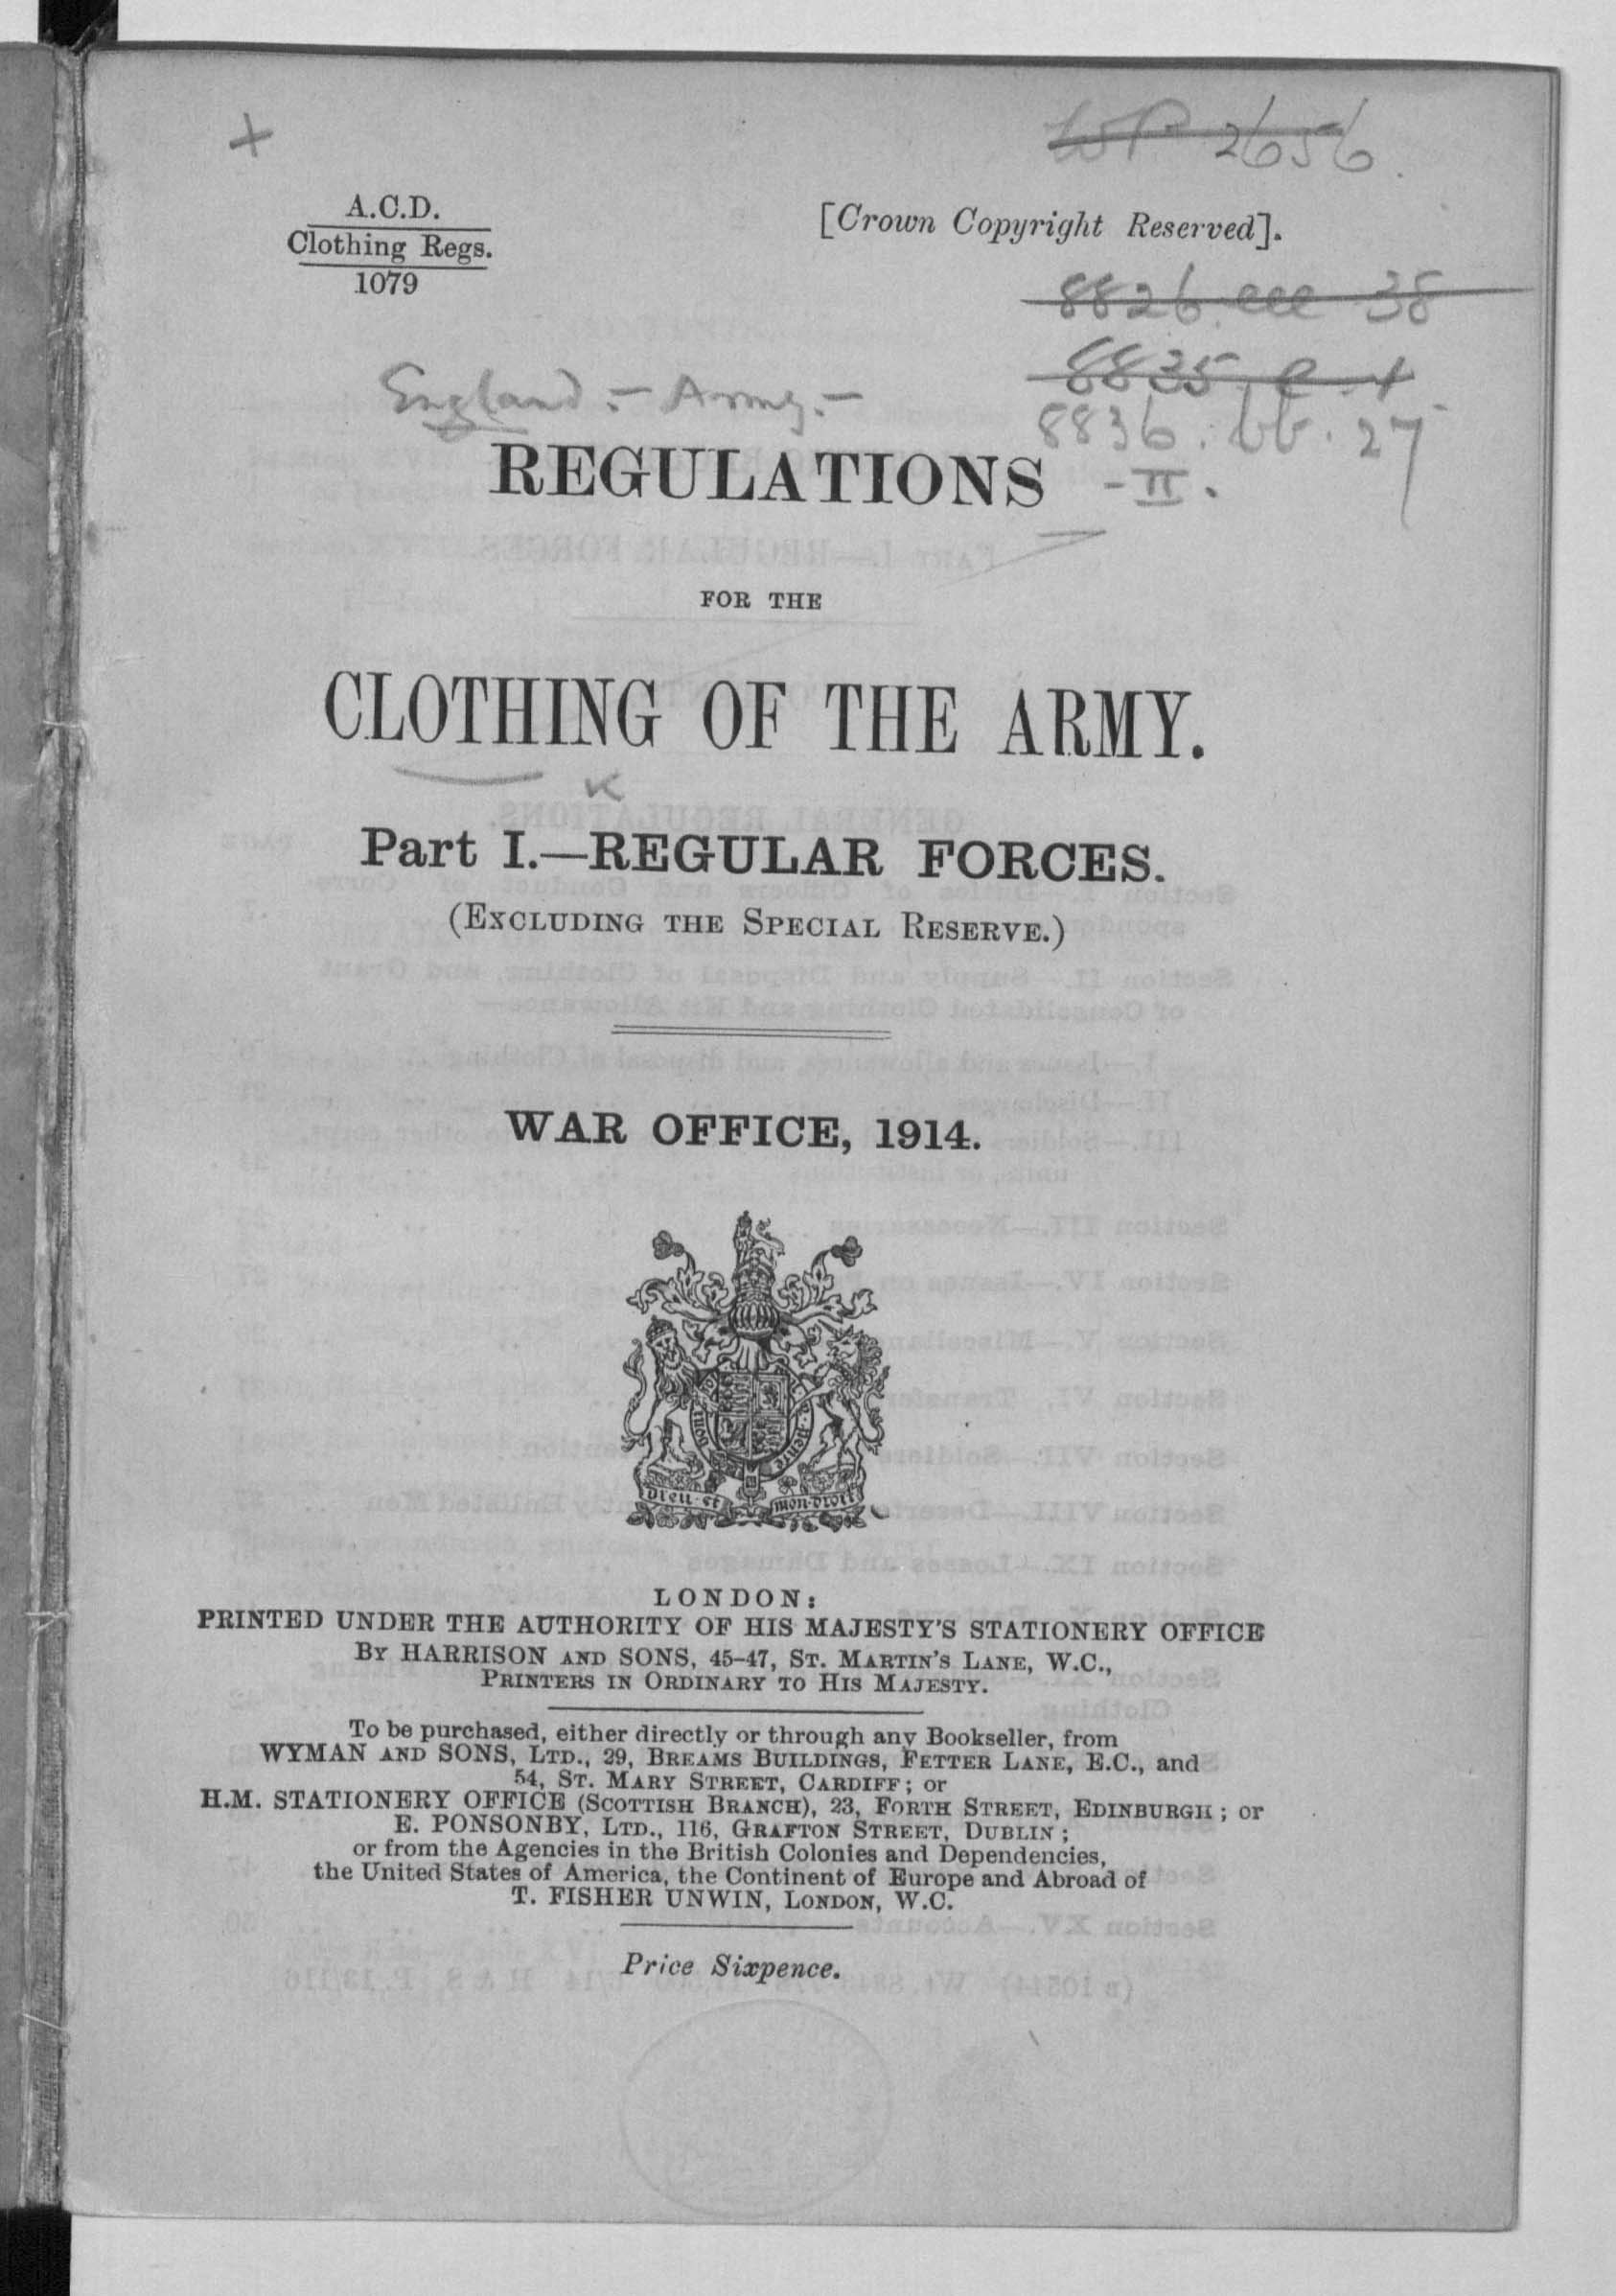 Regulations for the Clothing of the Army. Part I.-Regular Forces. Excluding the Special Reserve.